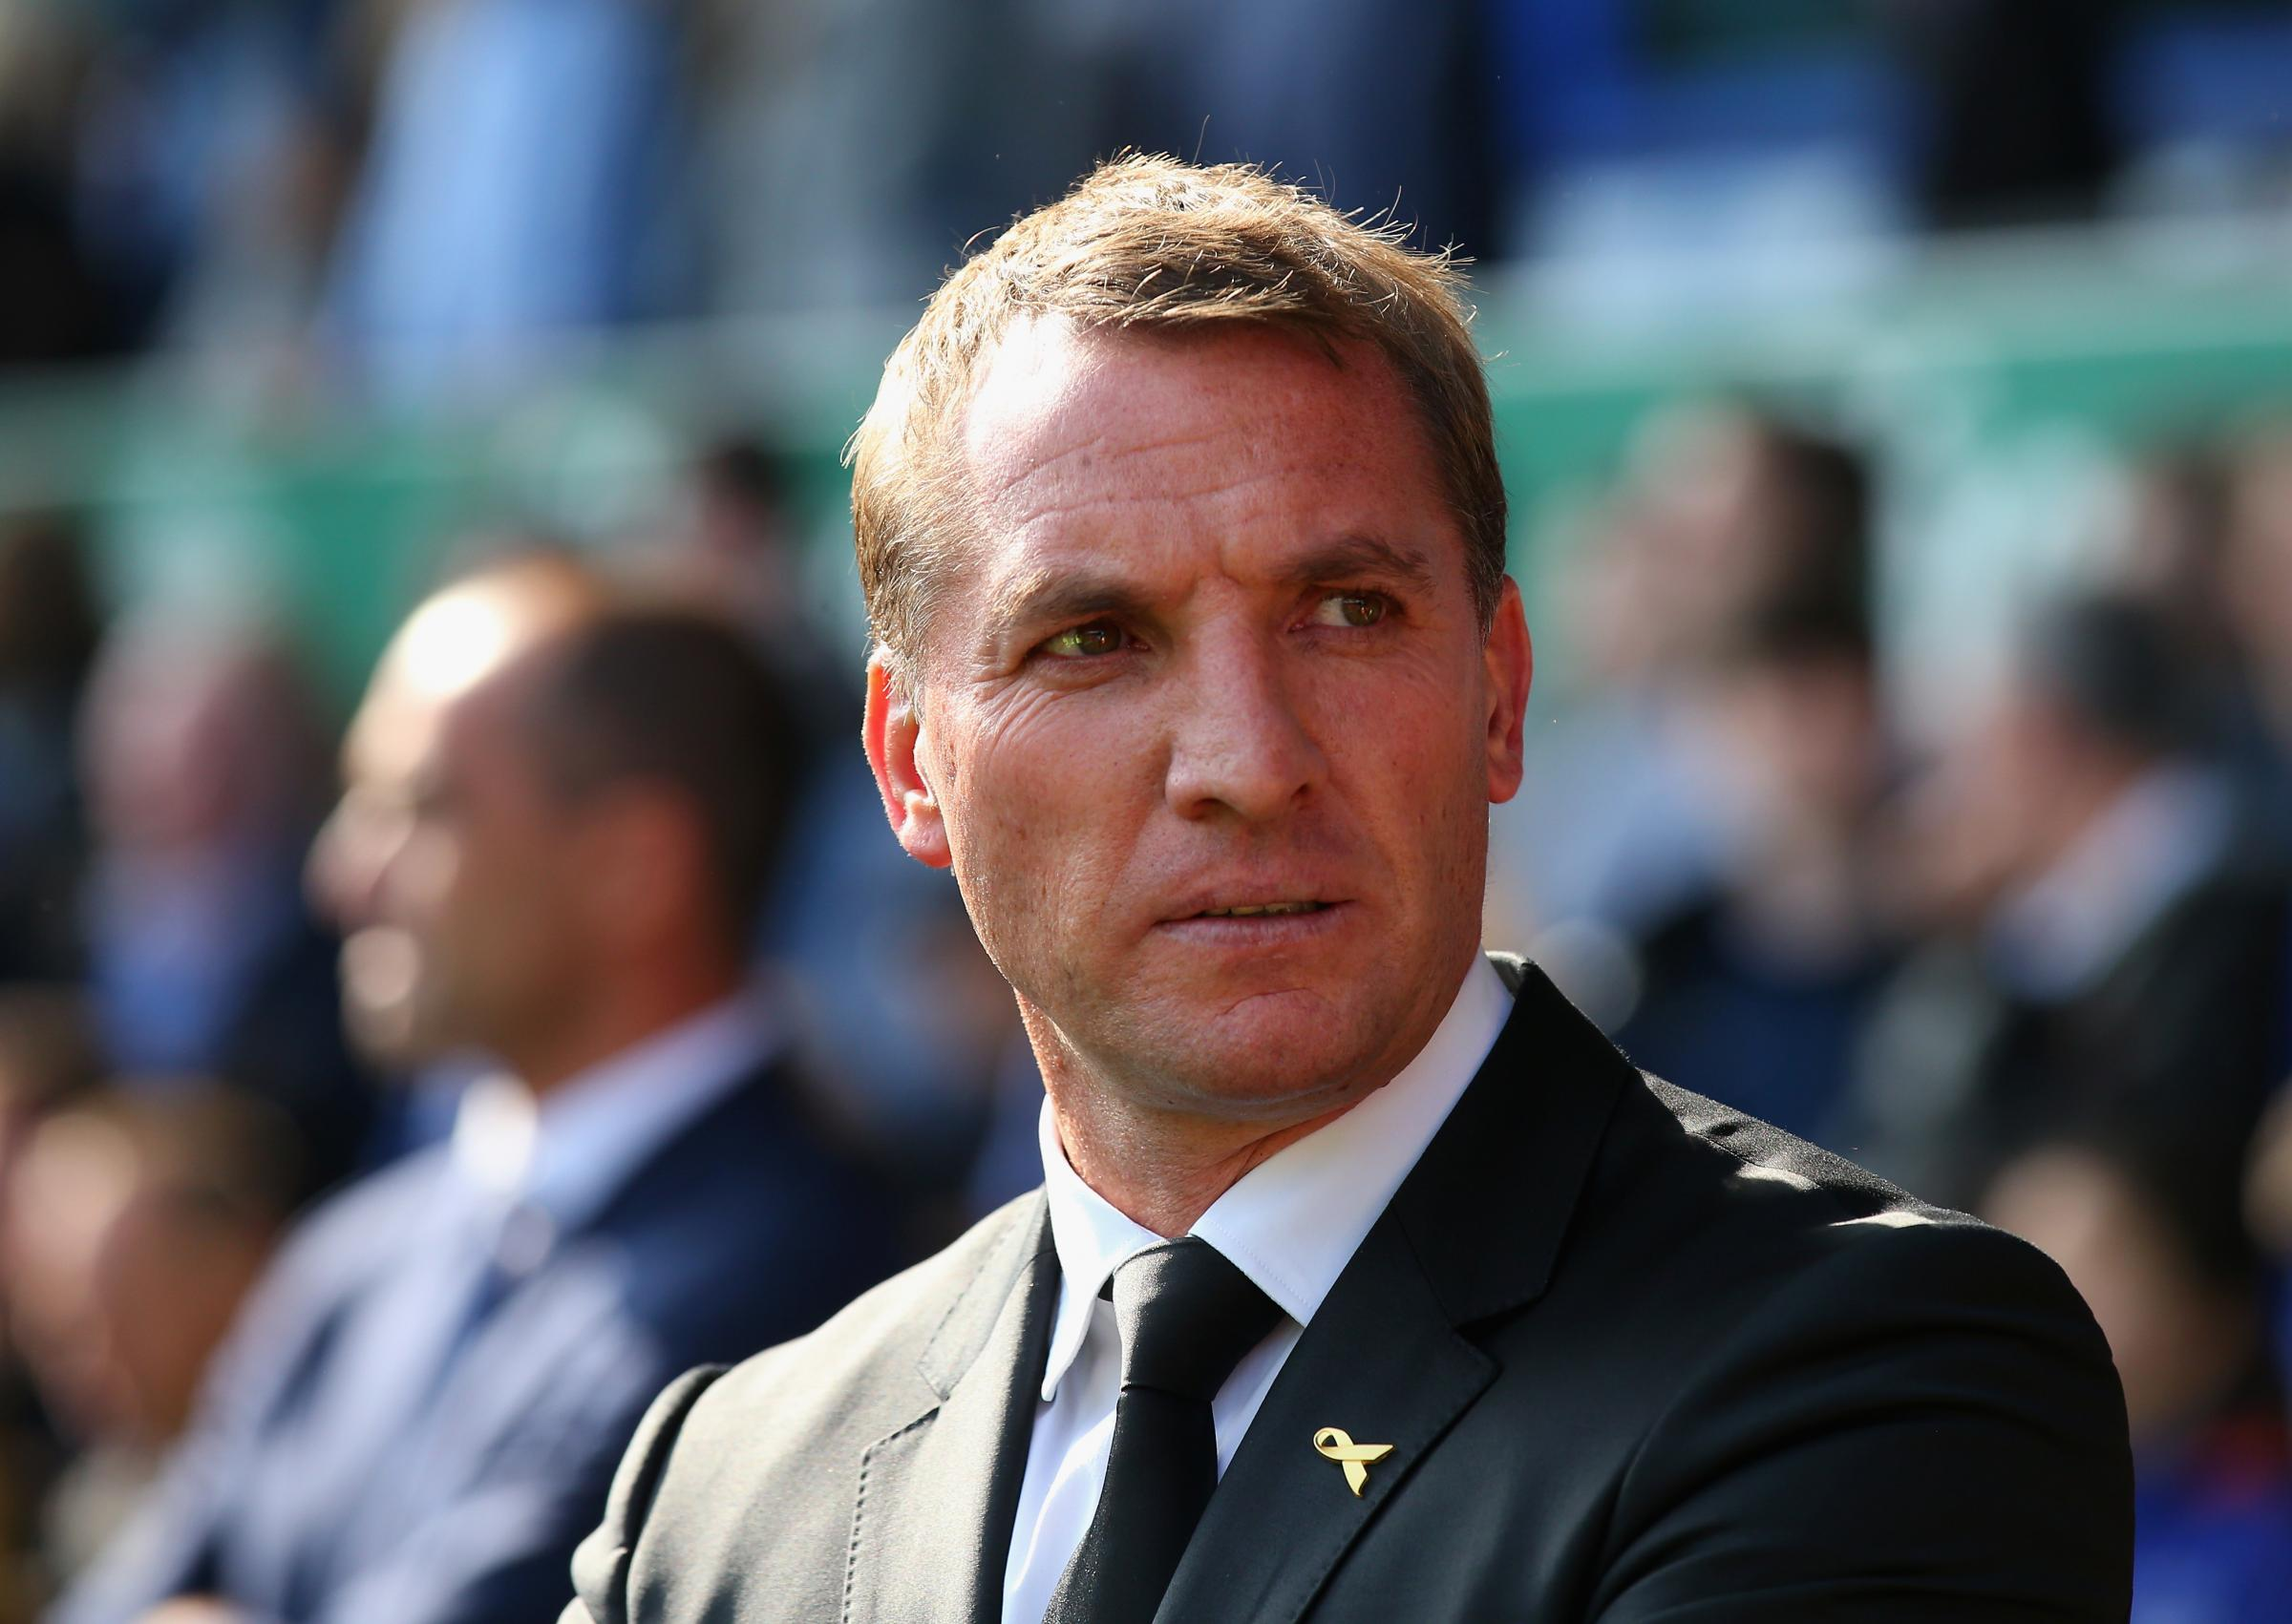 Brendan Rodgers was harshly dealt with by Liverpool, says Paul Walsh